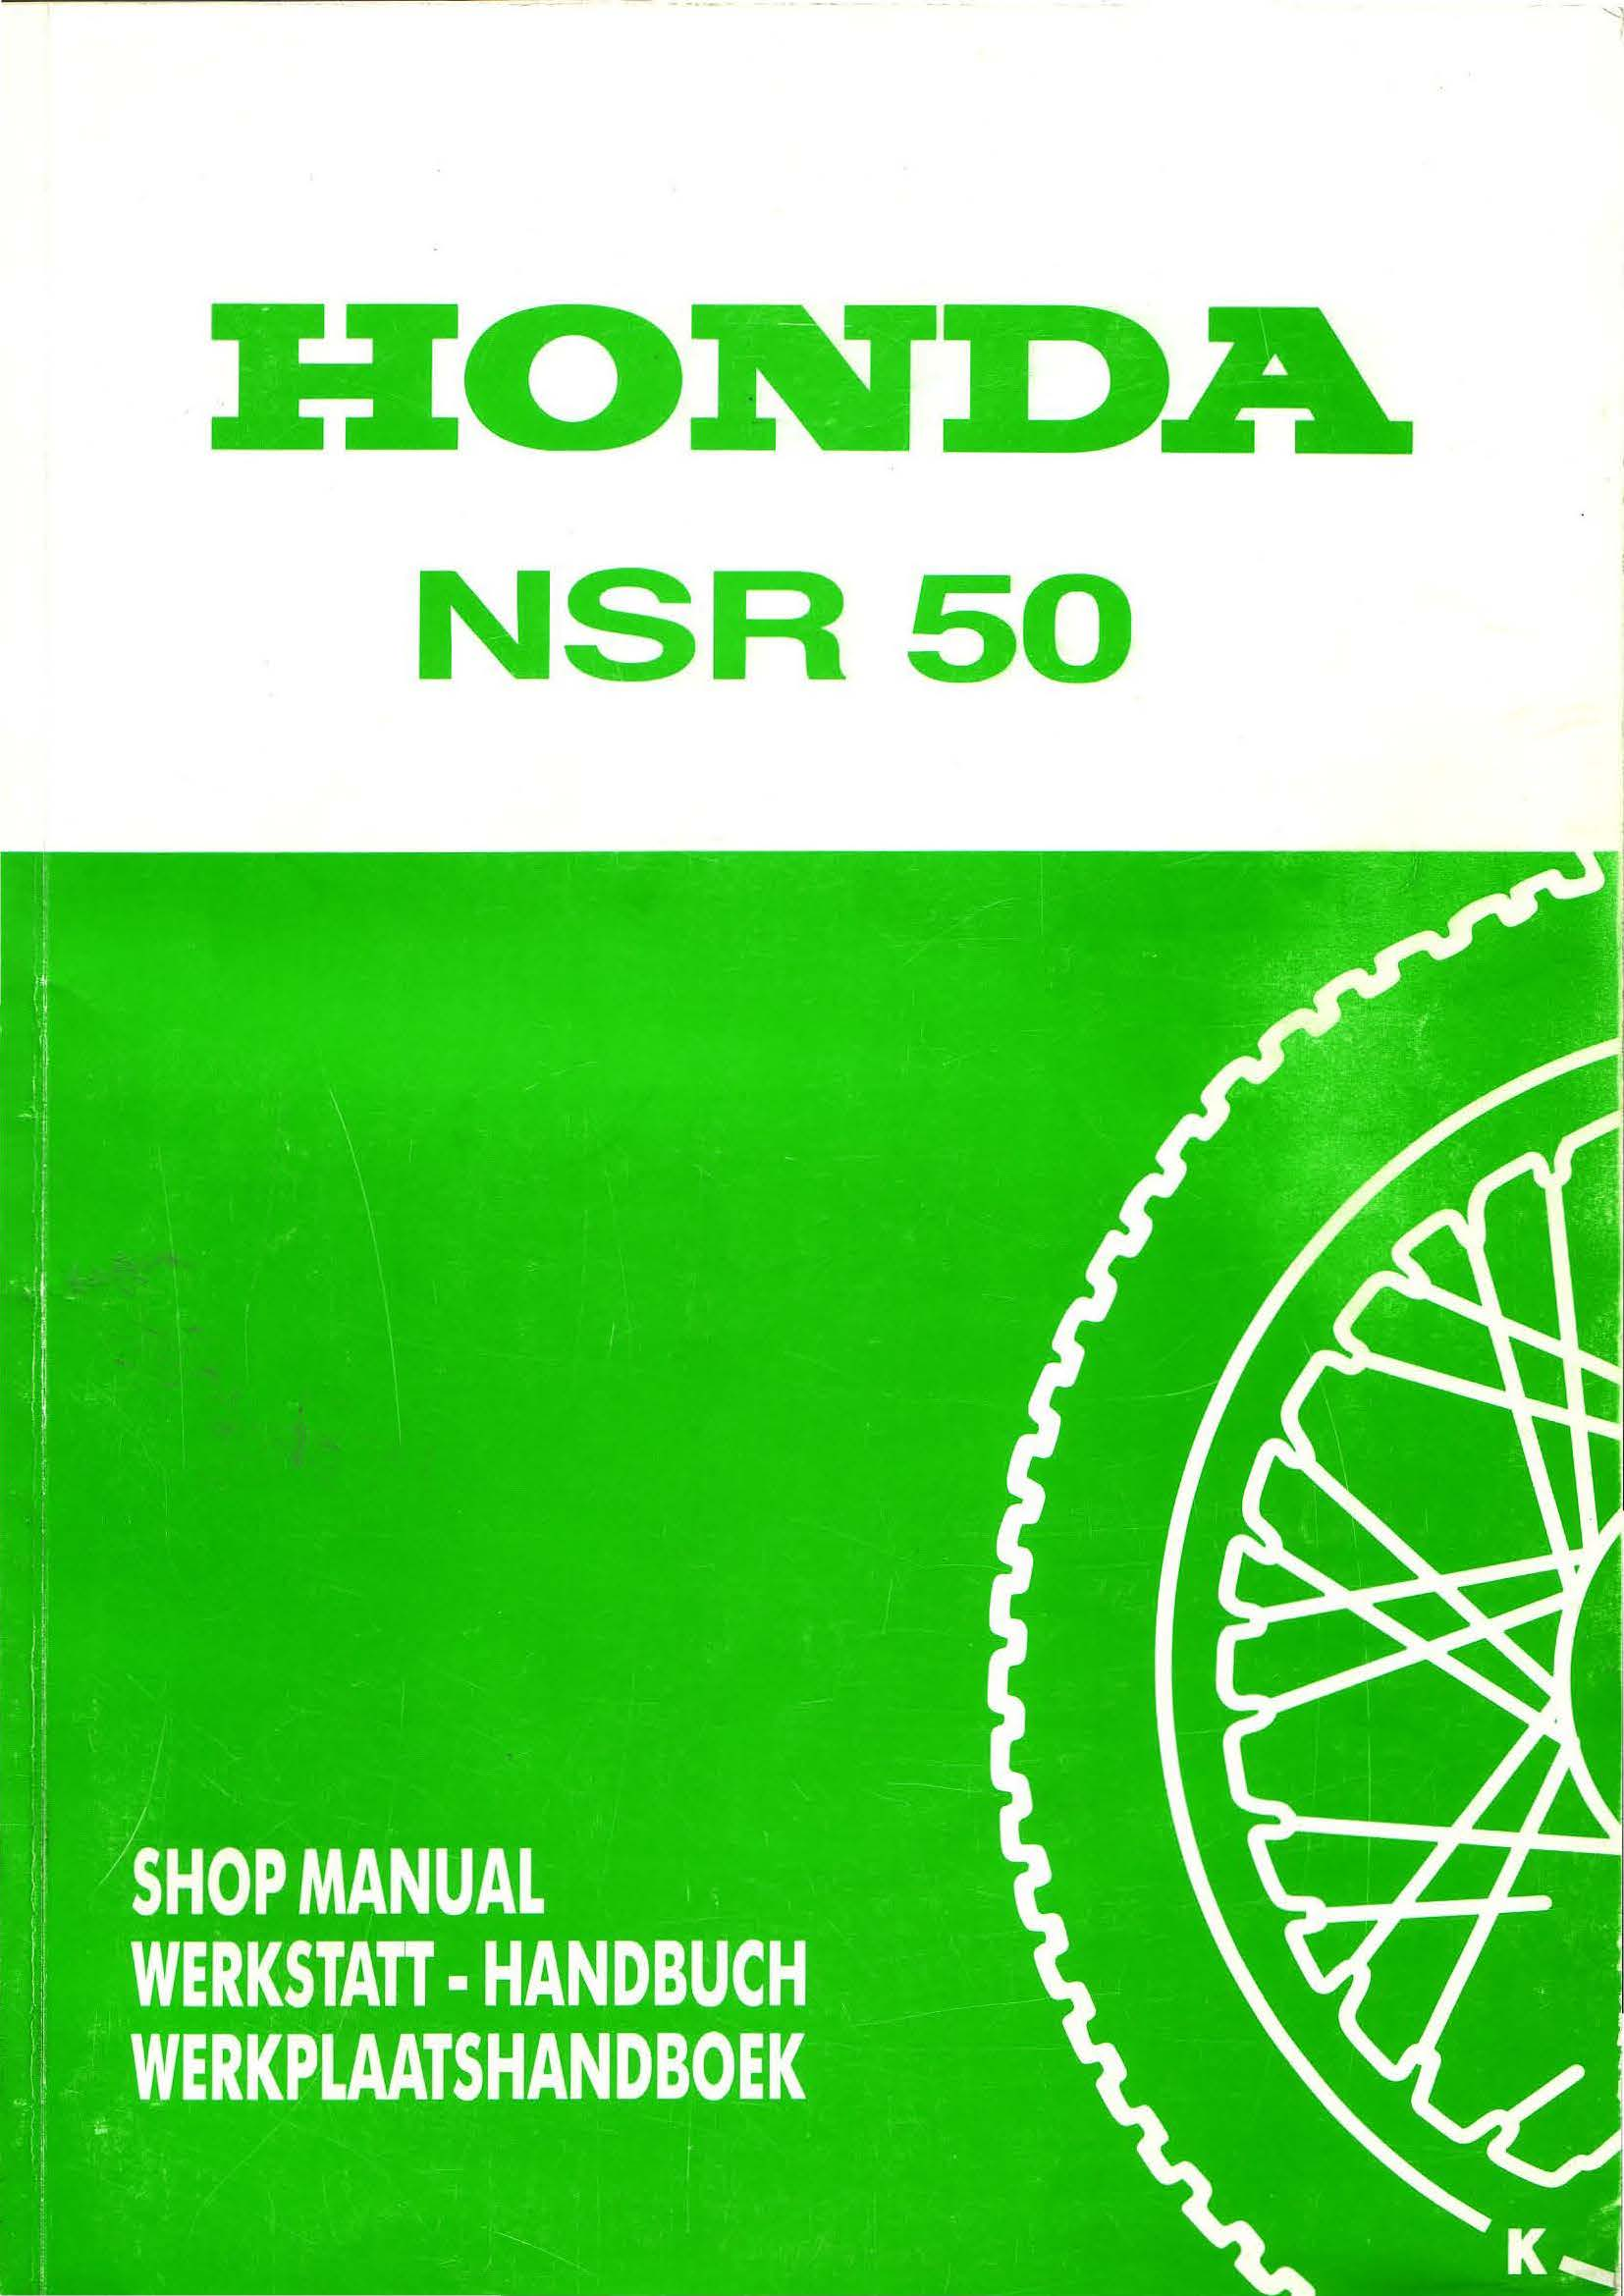 Workshop manual for Honda NSR50 (Dutch)